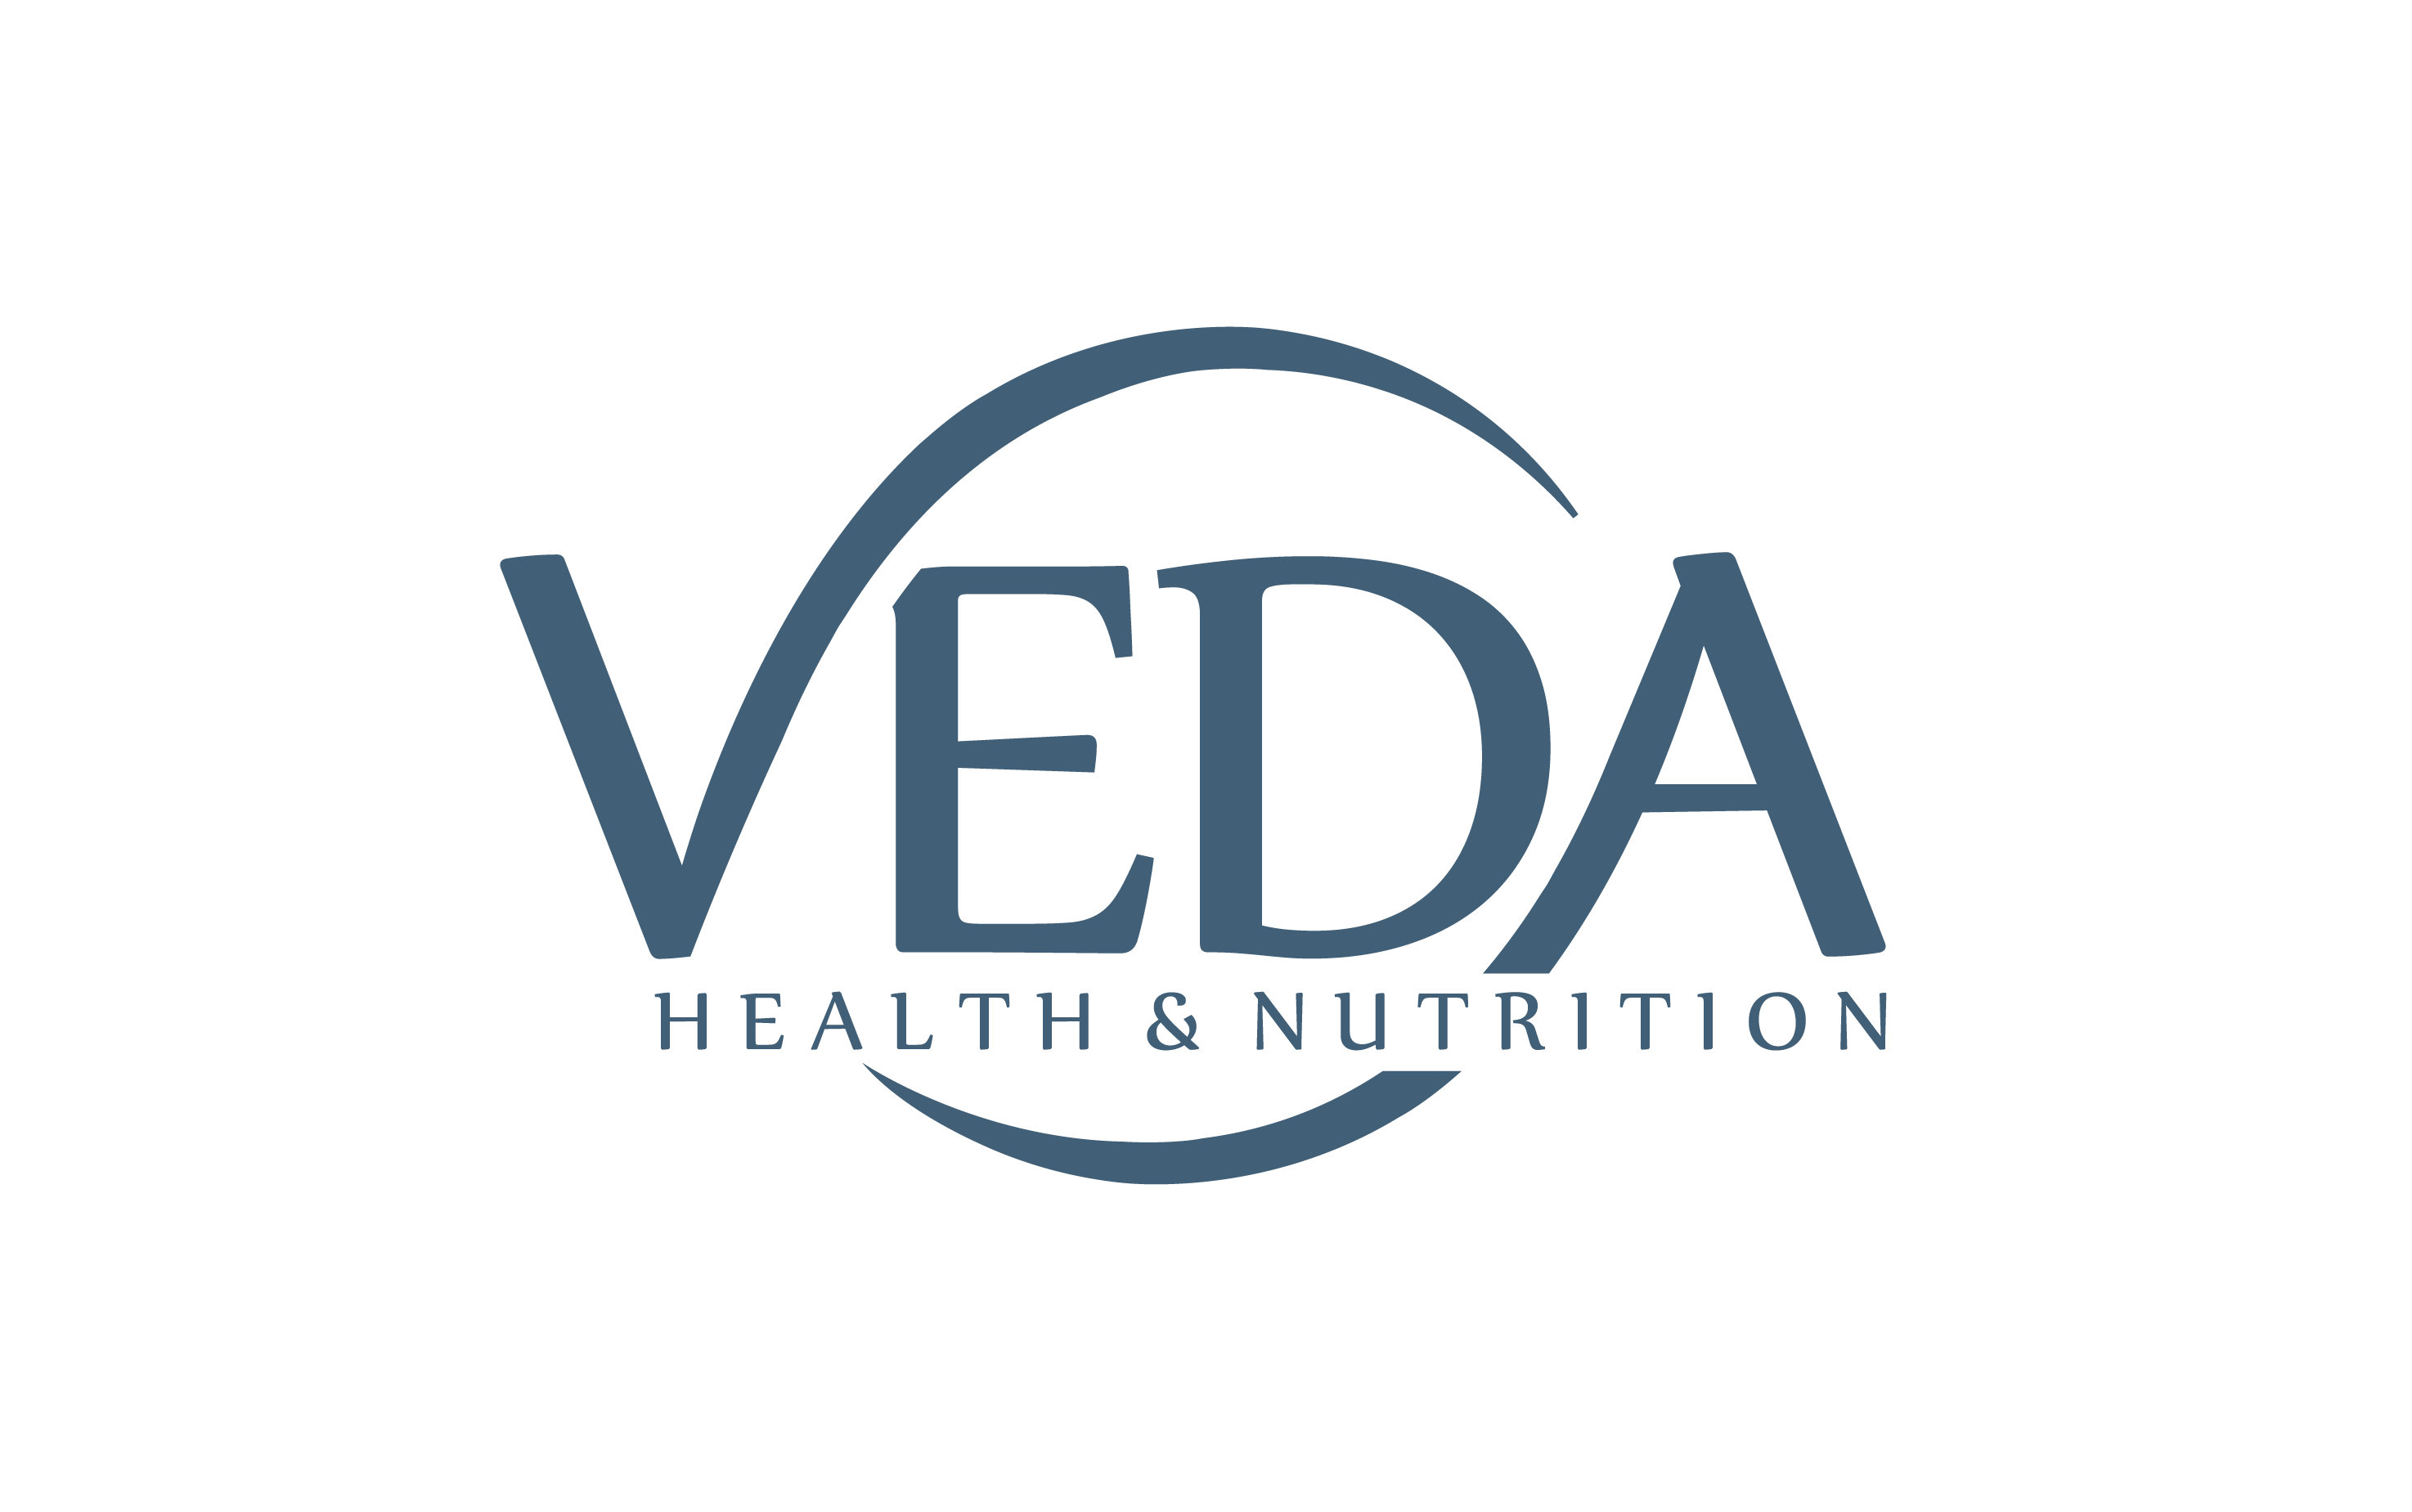 Veda Health & Nutrition